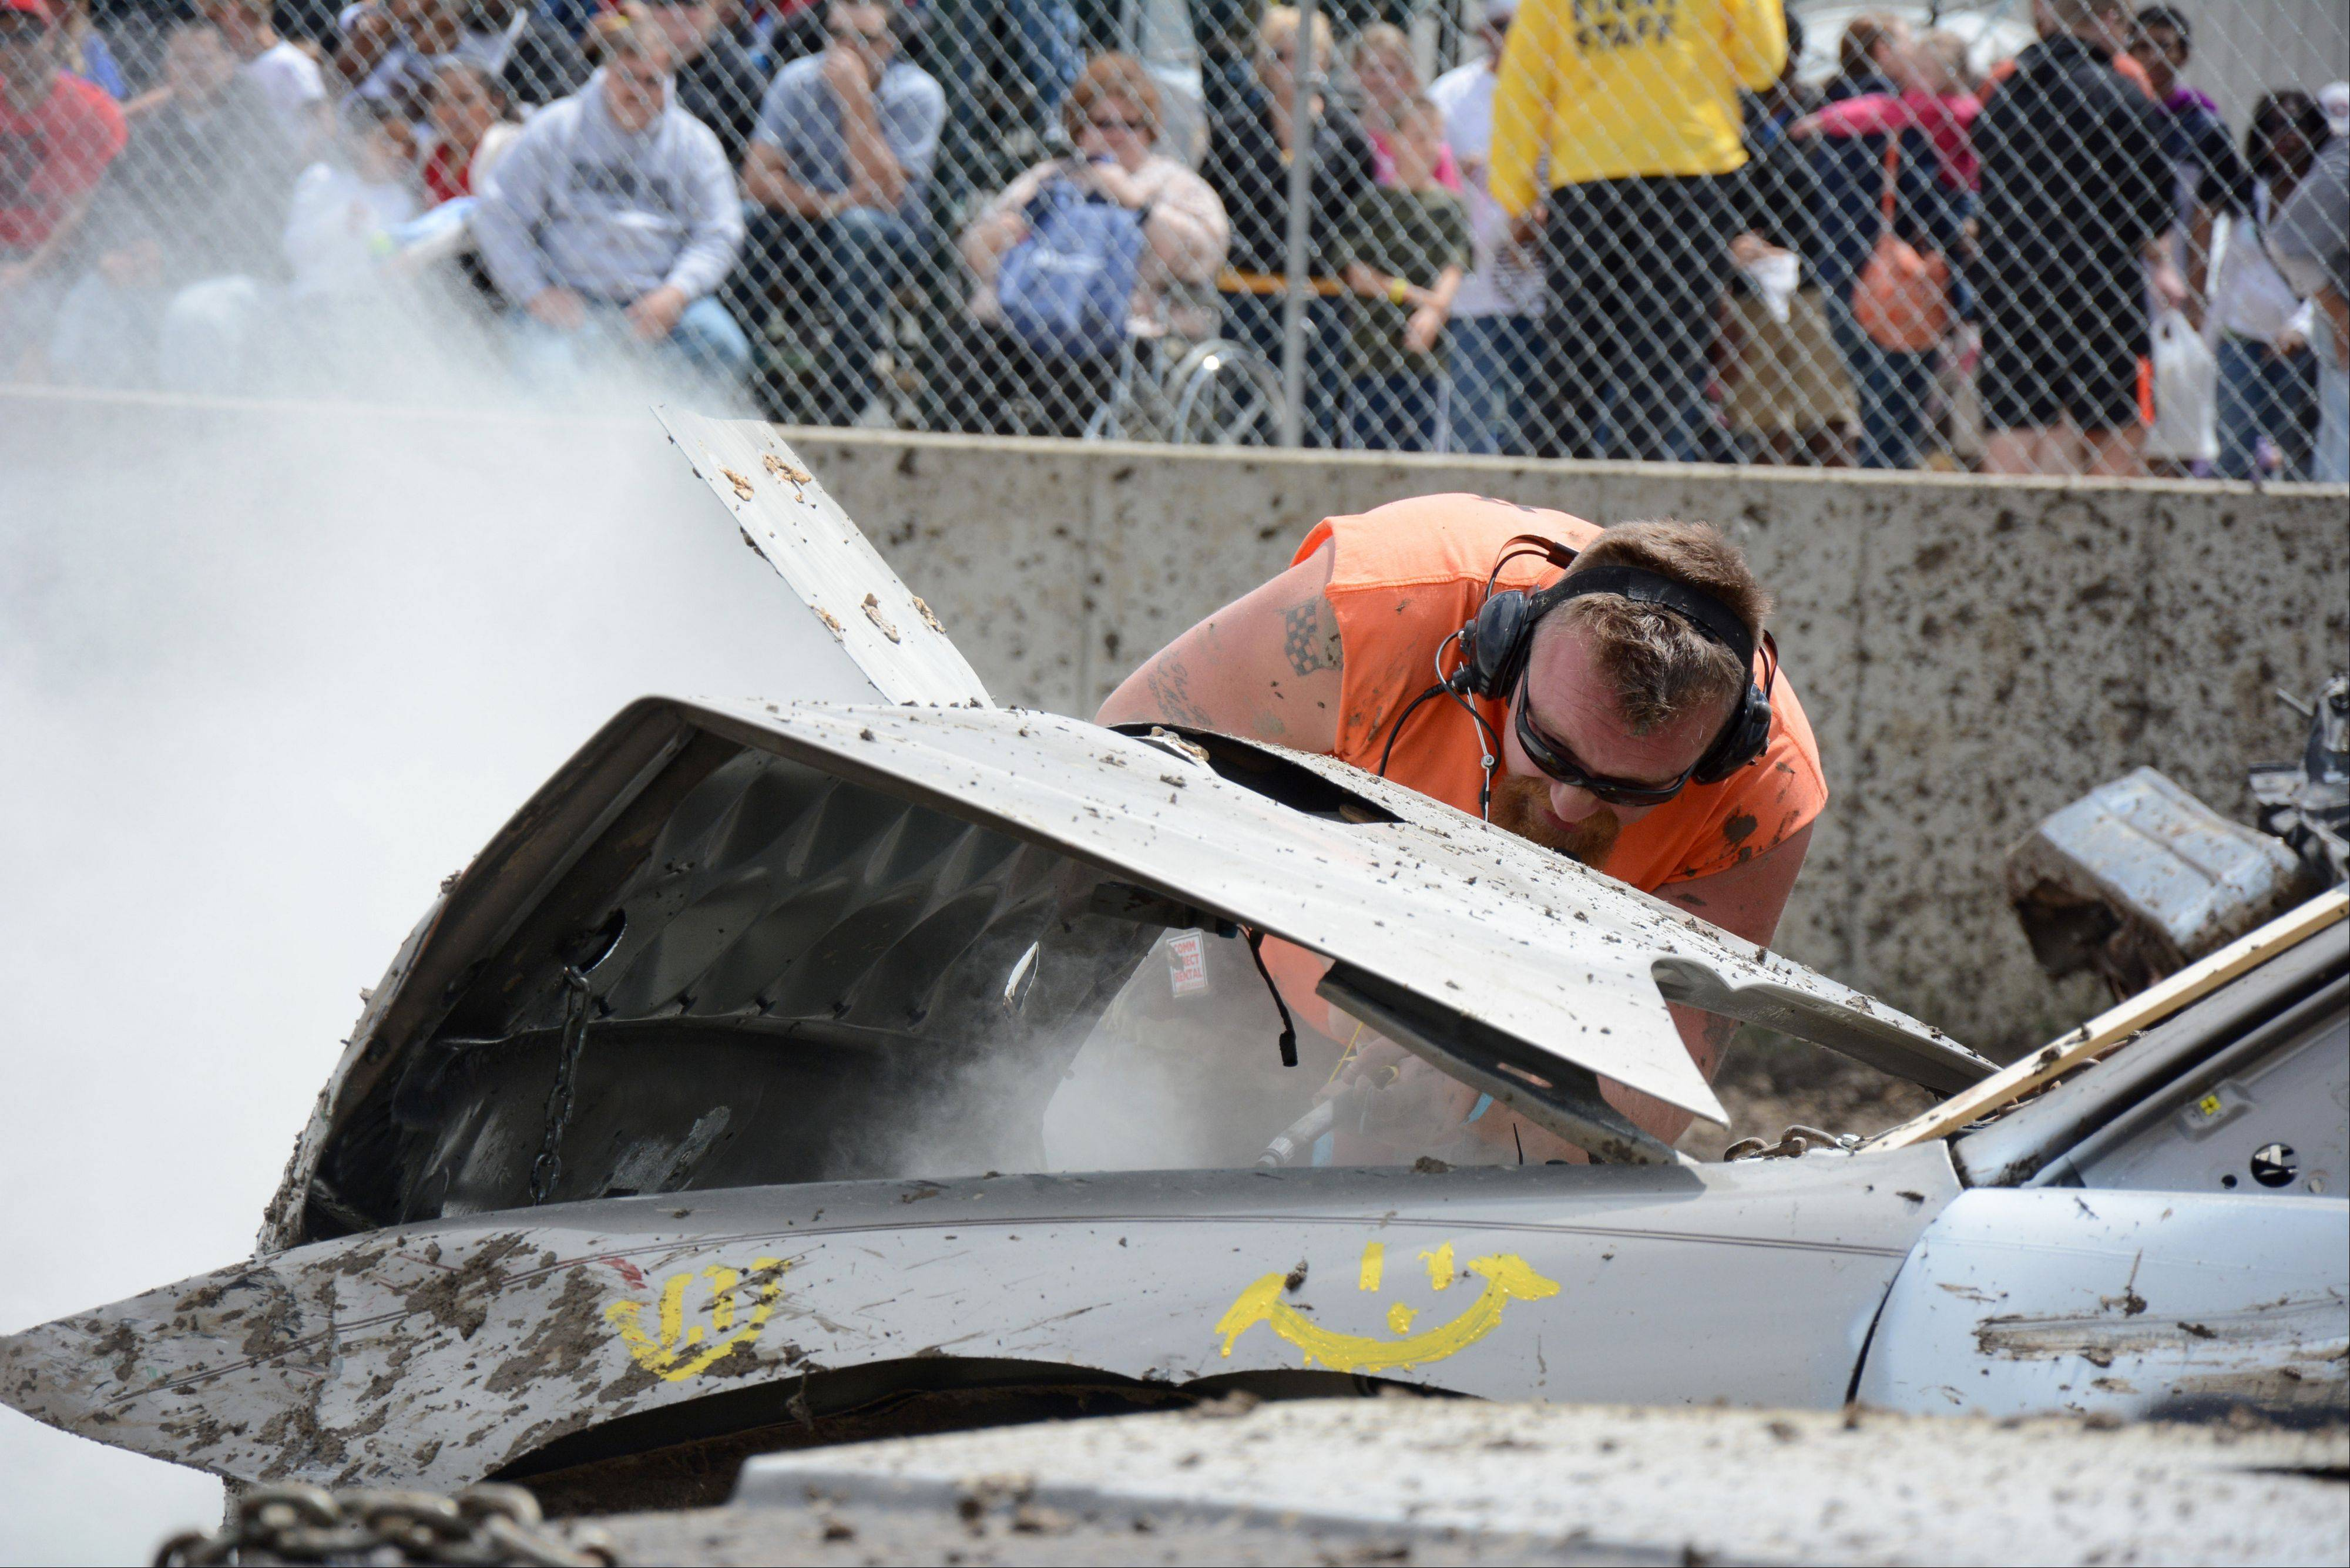 Paul Milbratz, of Wonder Lake, extinguishes a car fire during the Destruction Derby at the Lake County Fair Sunday, July 28.